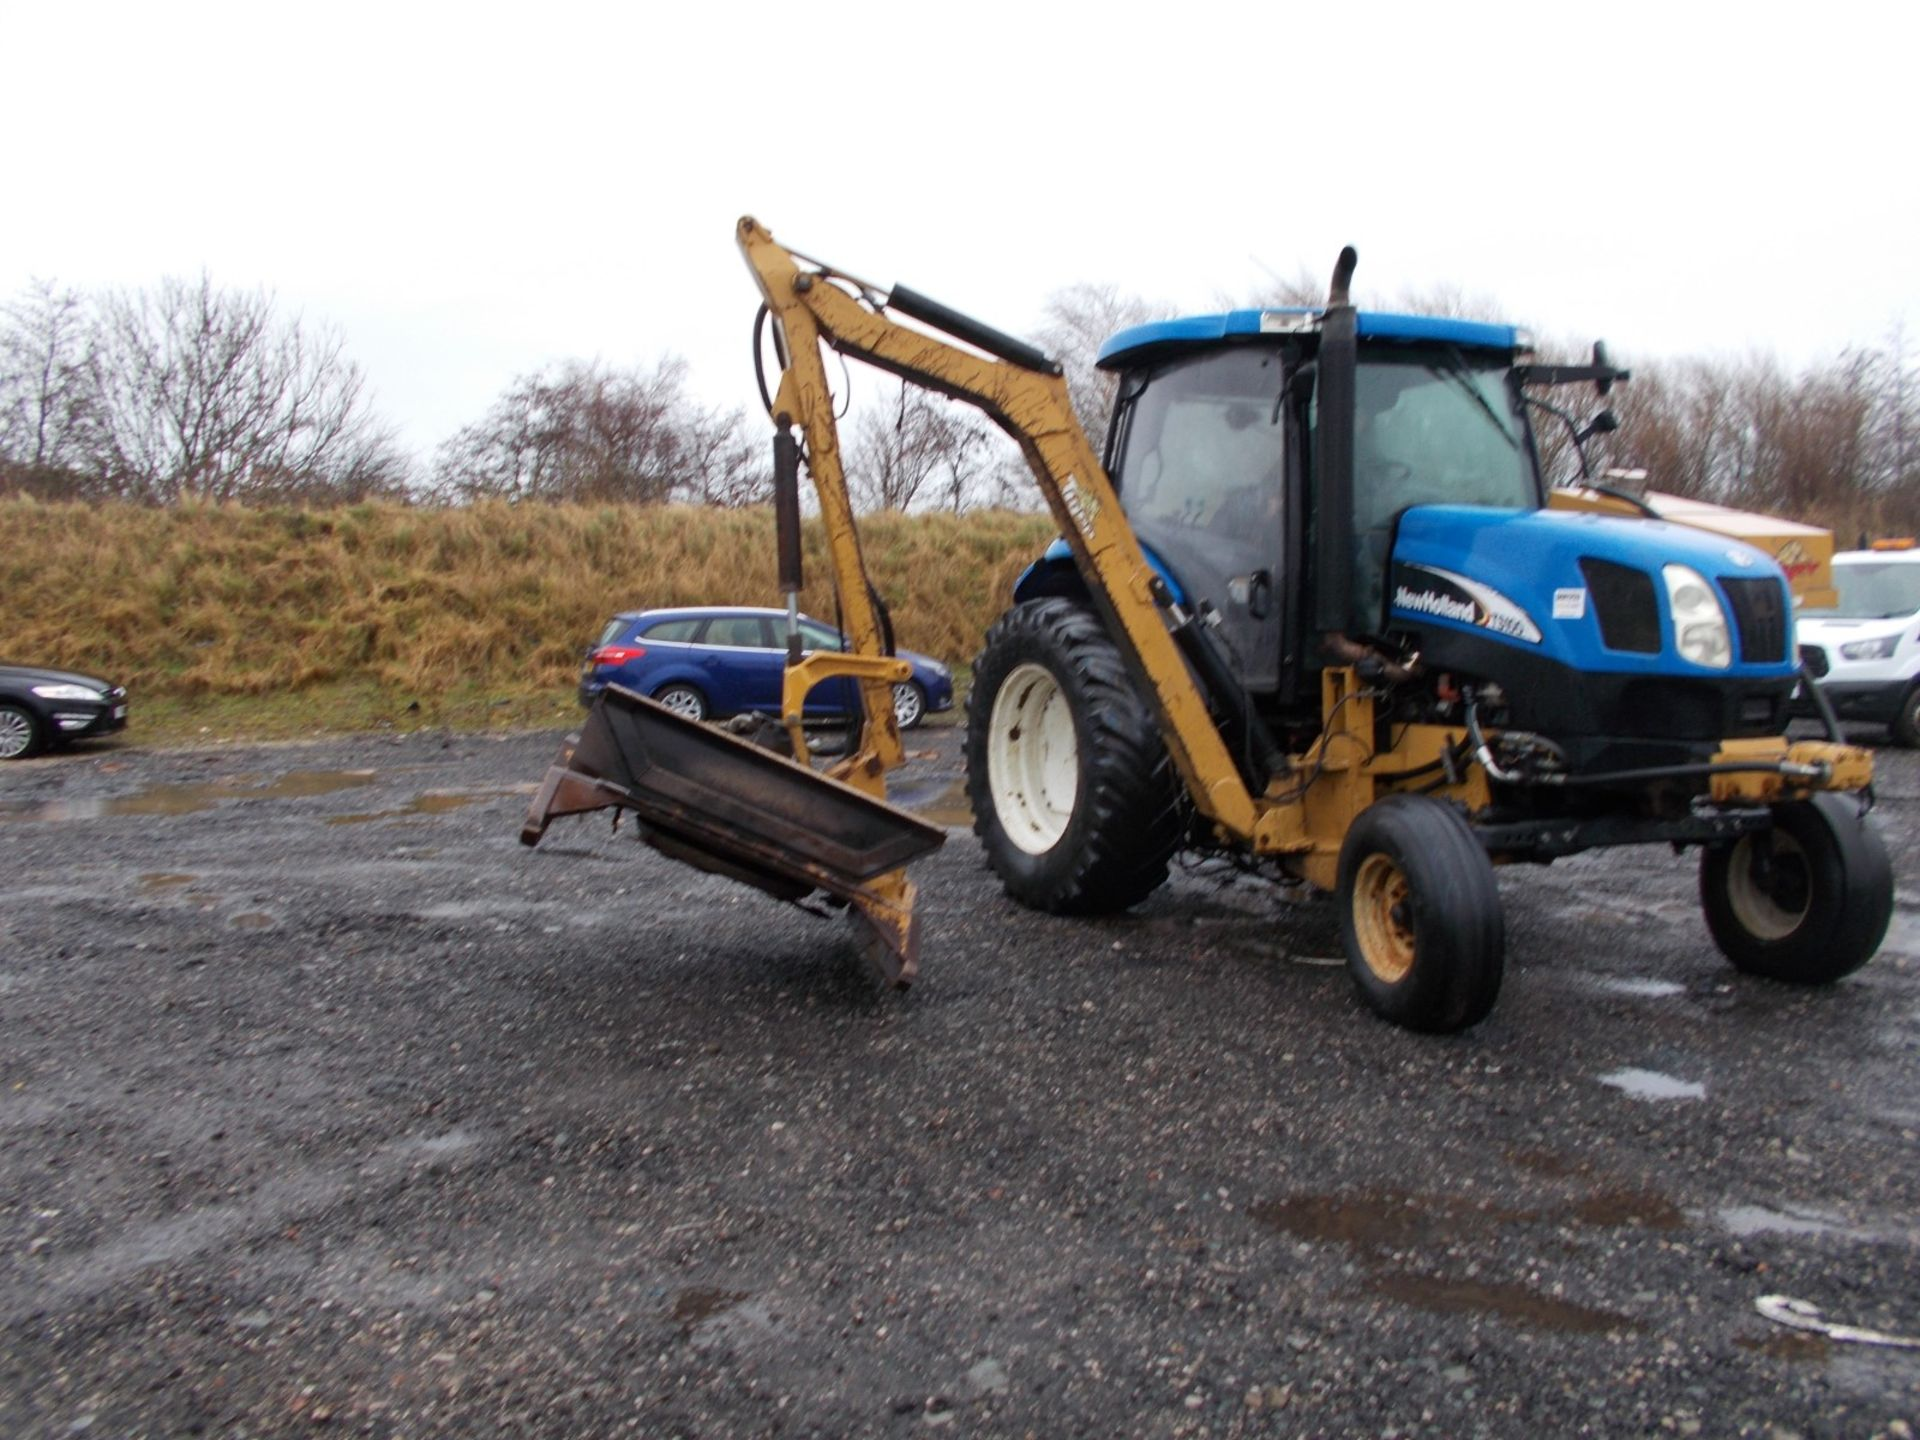 2003 NEW HOLLAND TS100A TRACTOR WITH MOWER ATTACHMENT, 4.5 LITRE 100HP TURBO DIESEL *PLUS VAT* - Image 9 of 24